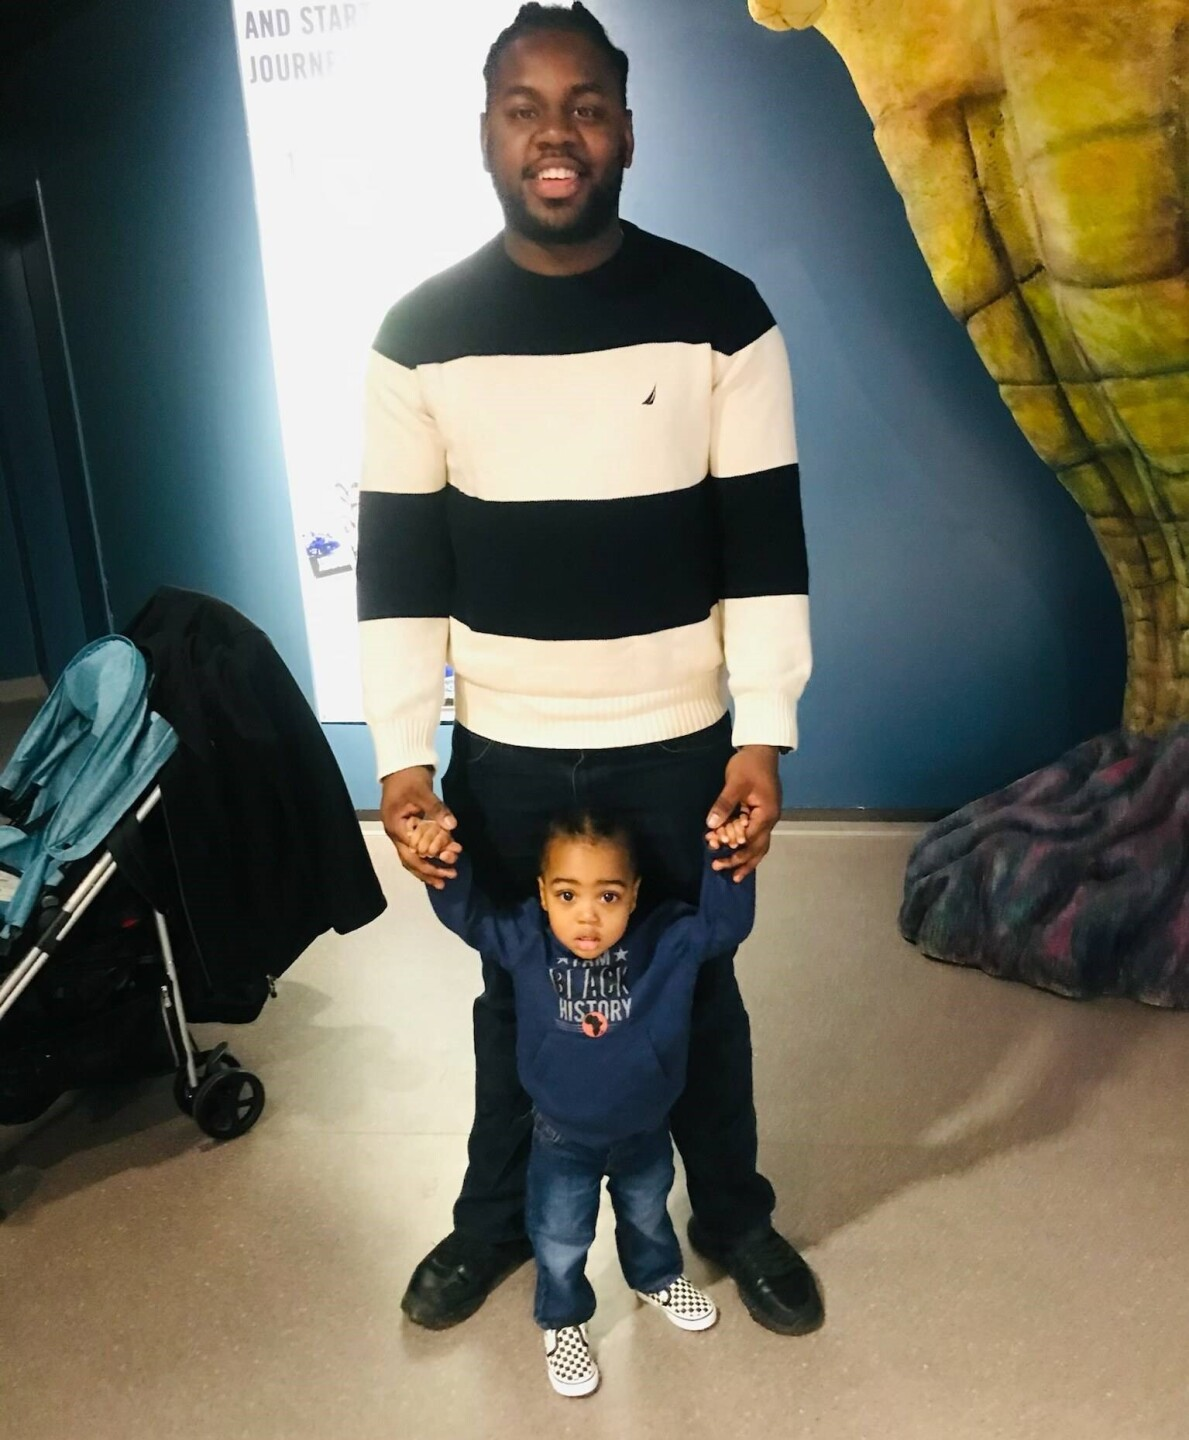 Rodney Walker is standing and holding his young son's hands in this photo.